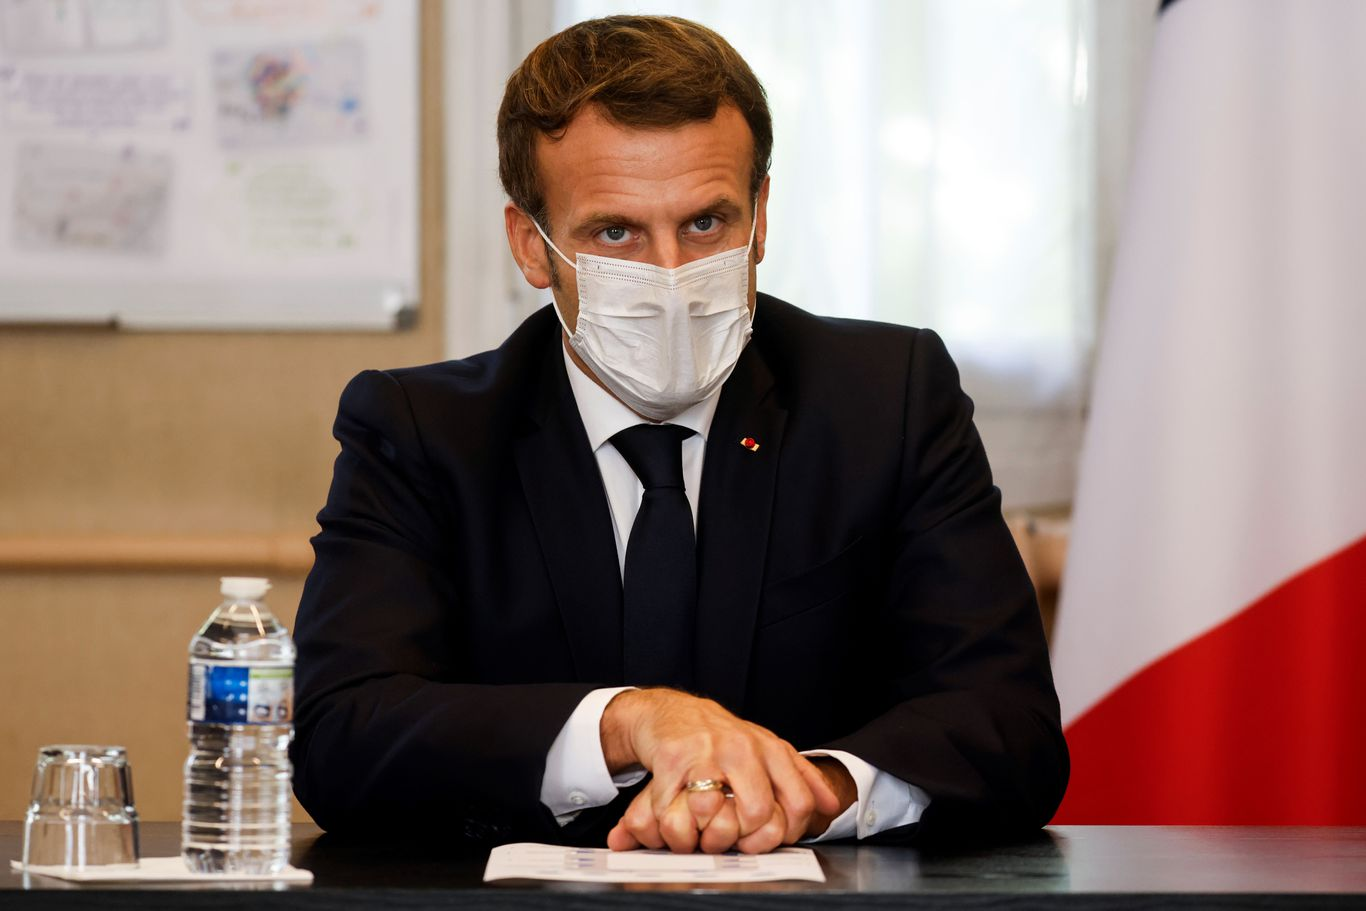 France imposes lockdown as Macron warns of overwhelming second COVID wave thumbnail